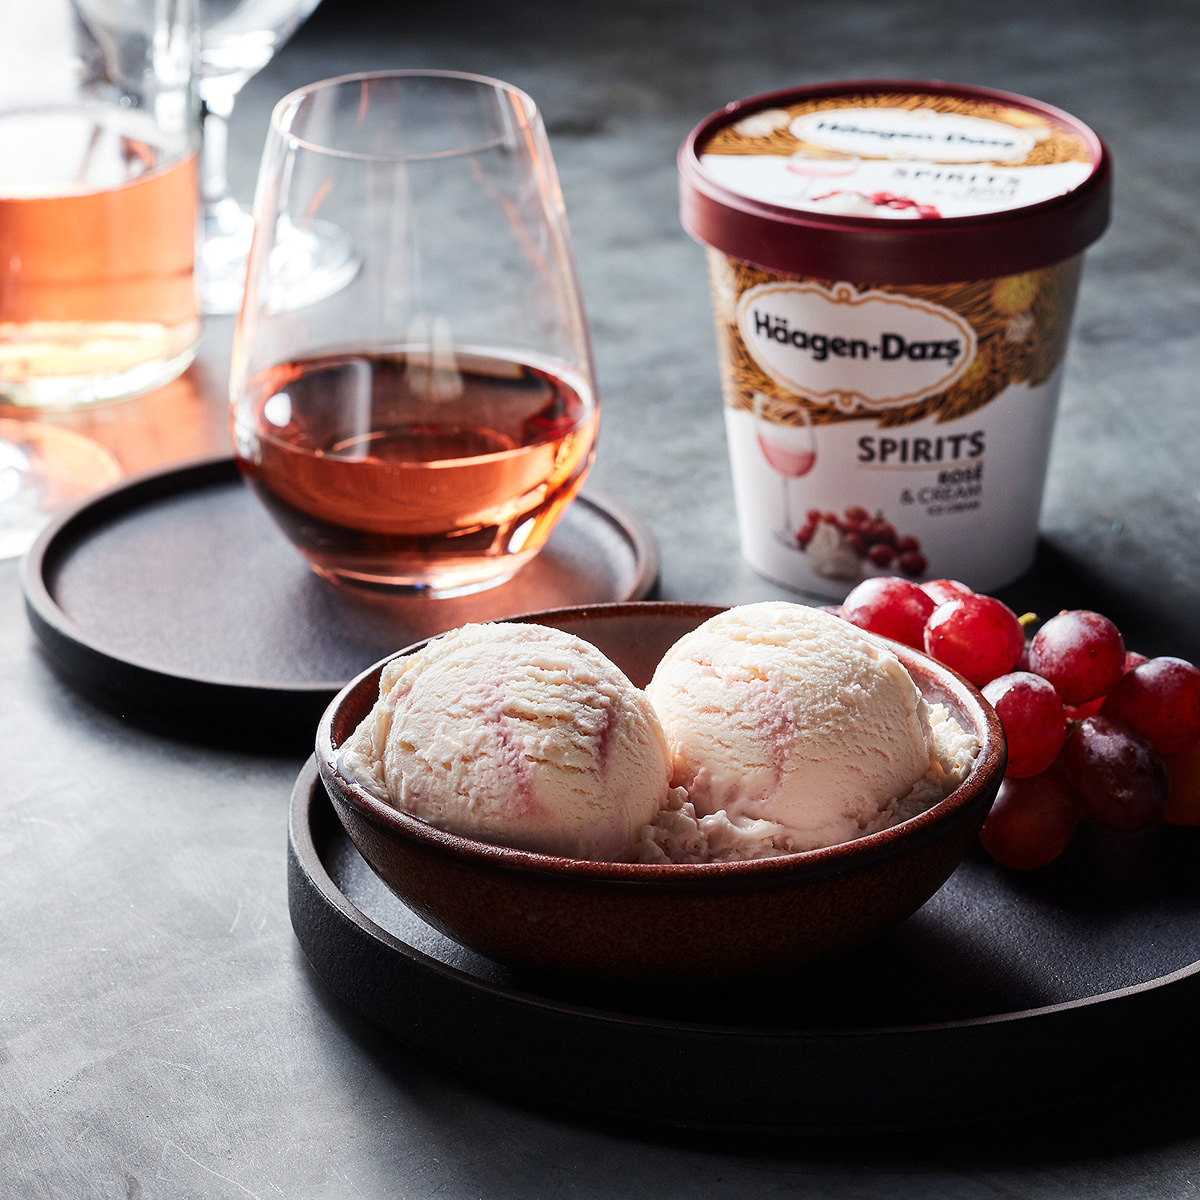 Haagen-Dazs Rose & Cream Ice Cream